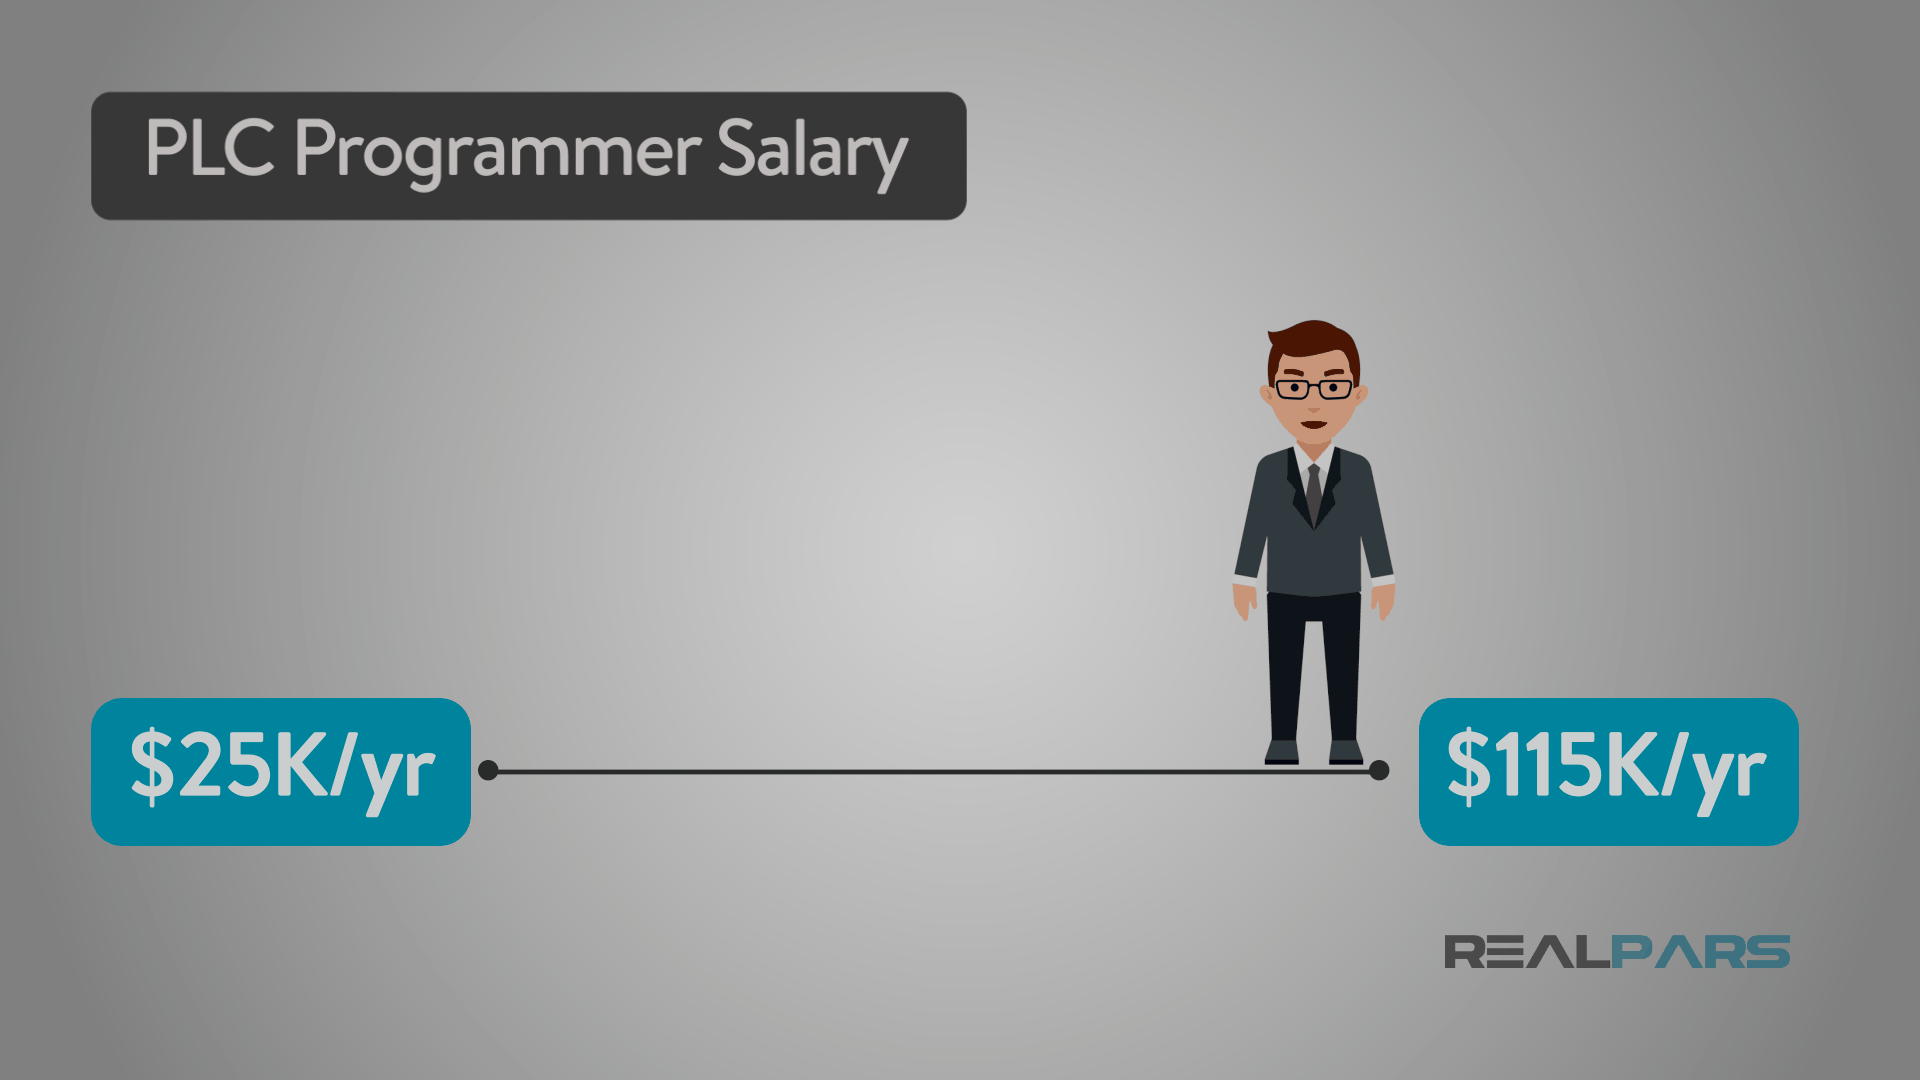 PLC Programmer Salary | PLC Programming Courses for